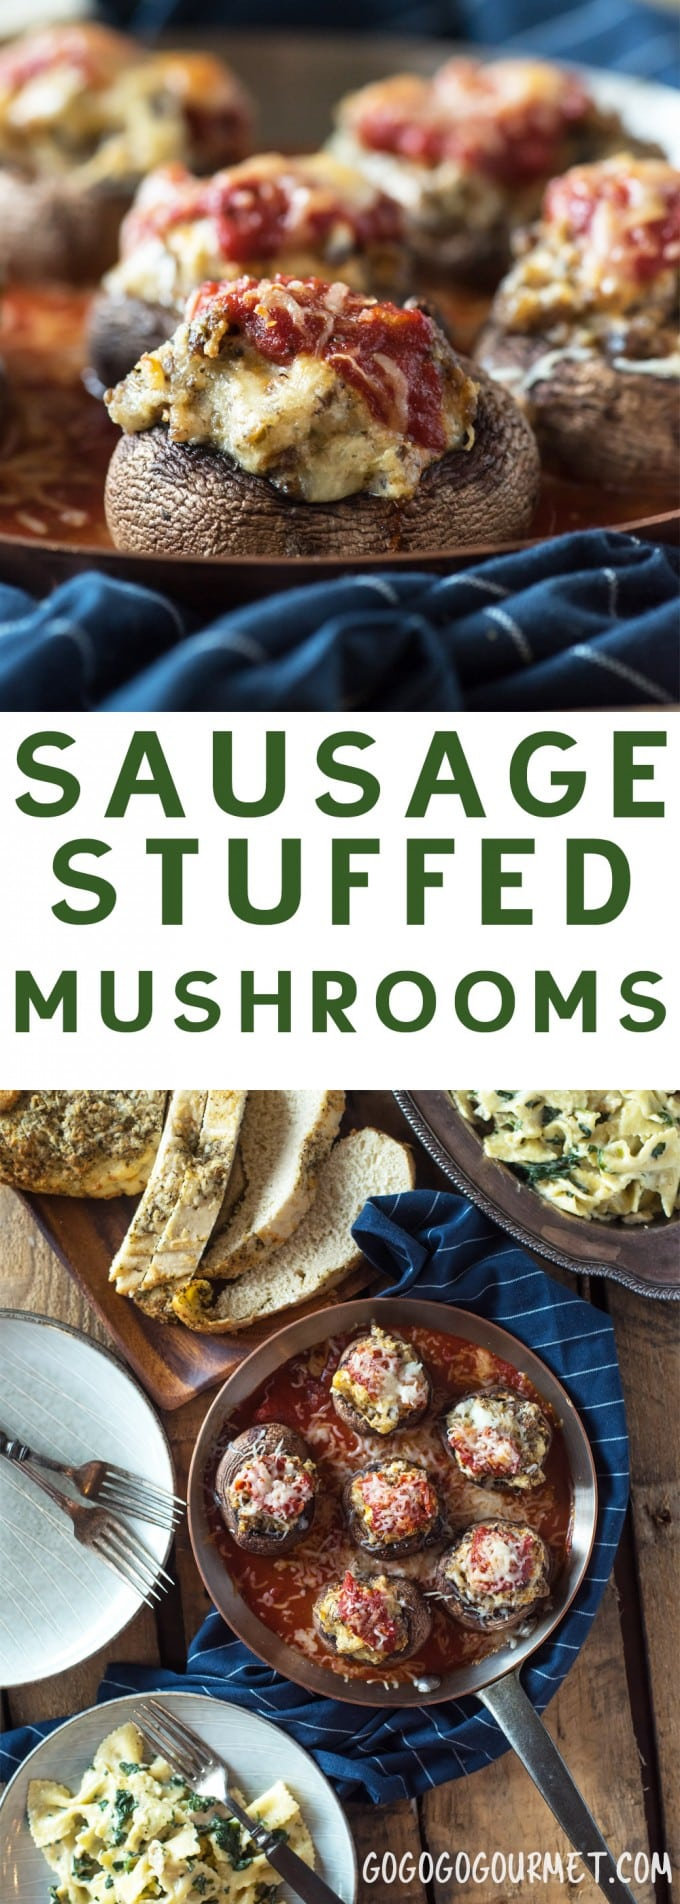 """These Sausage Stuffed Mushrooms are practically """"dump and bake,"""" making them a super fast side dish or appetizer! #gogogogourmet #sausagestuffedmushrooms #stuffedmushrooms via @gogogogourmet"""